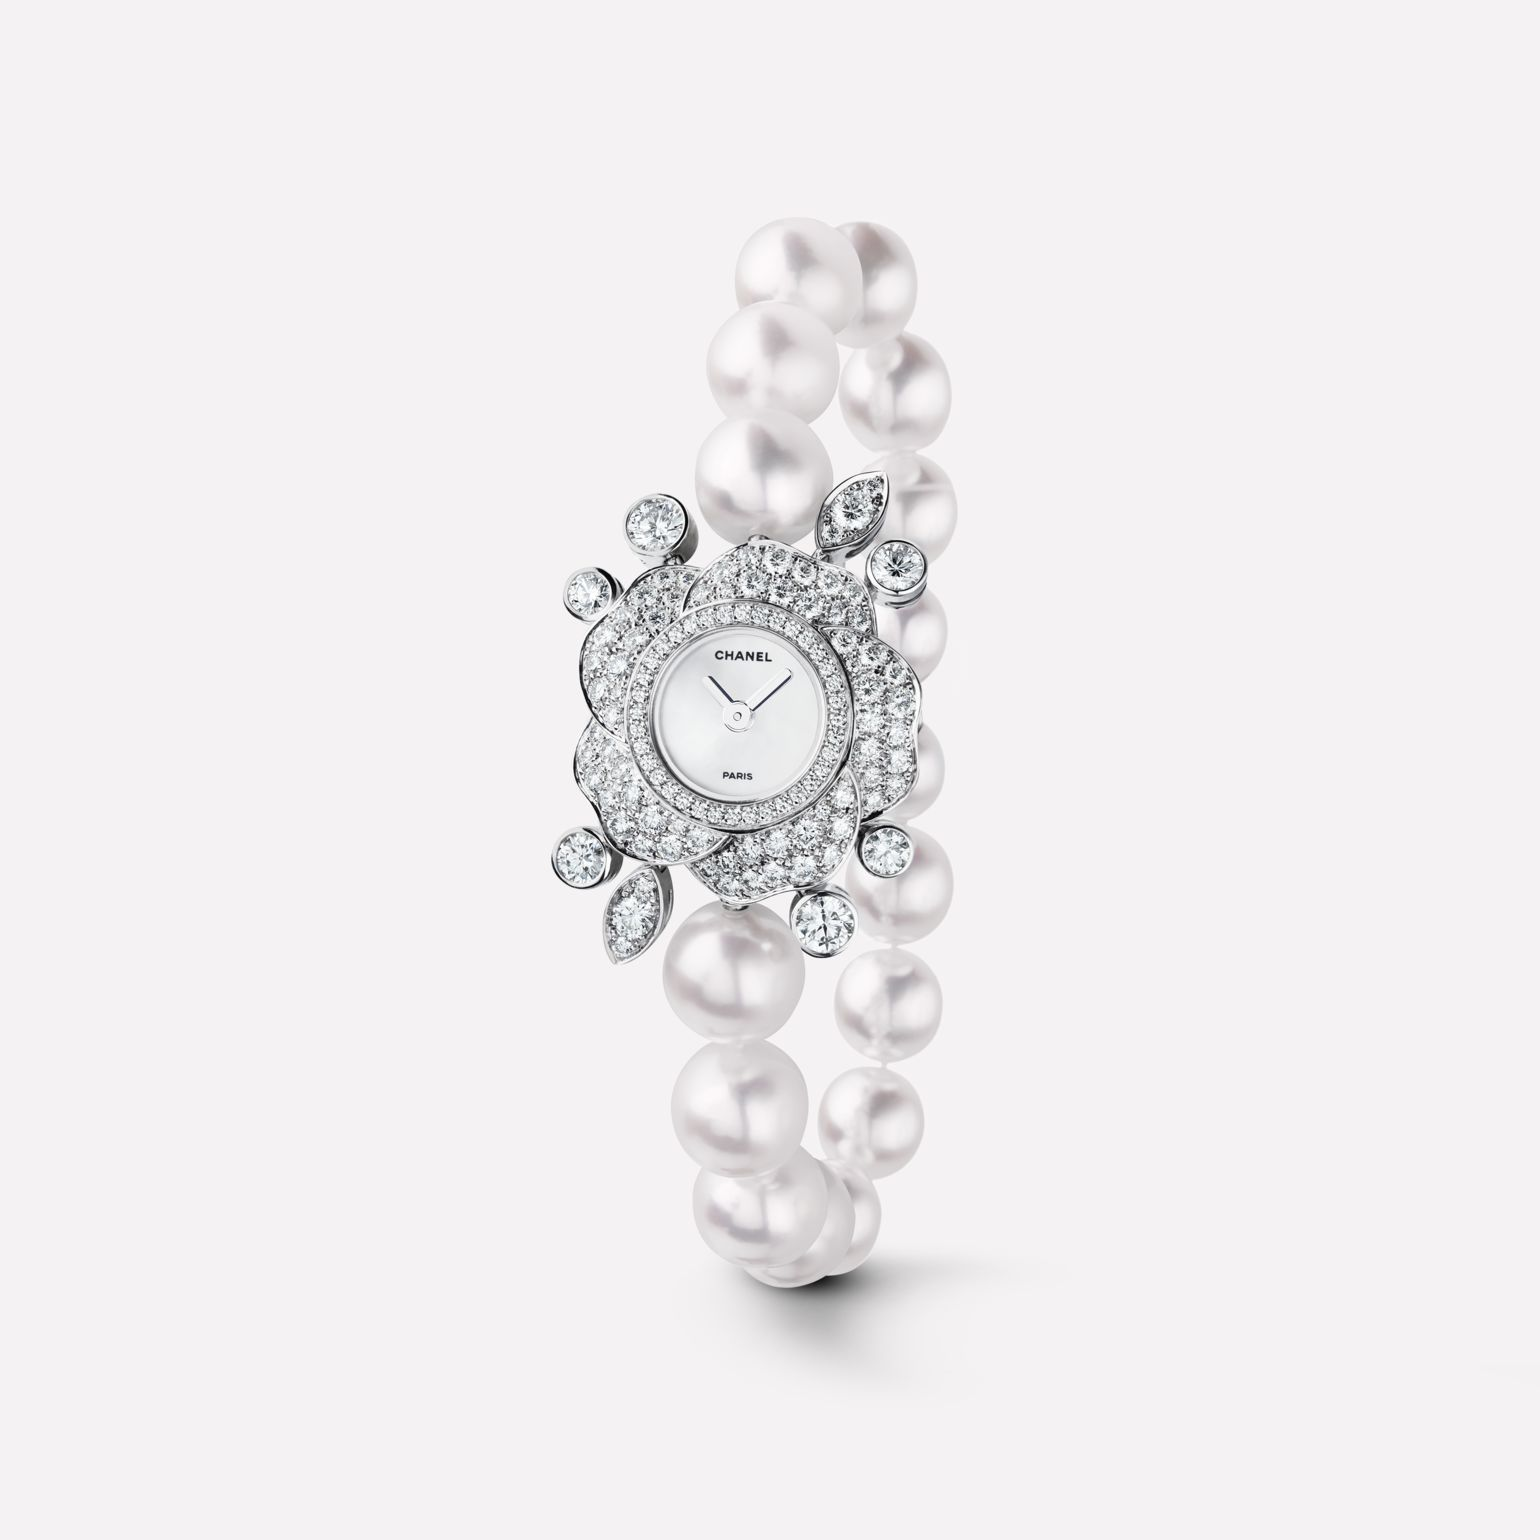 Camélia Jewellery Watch Pétales de Camélias motif in 18K white gold, diamonds and cultured pearls